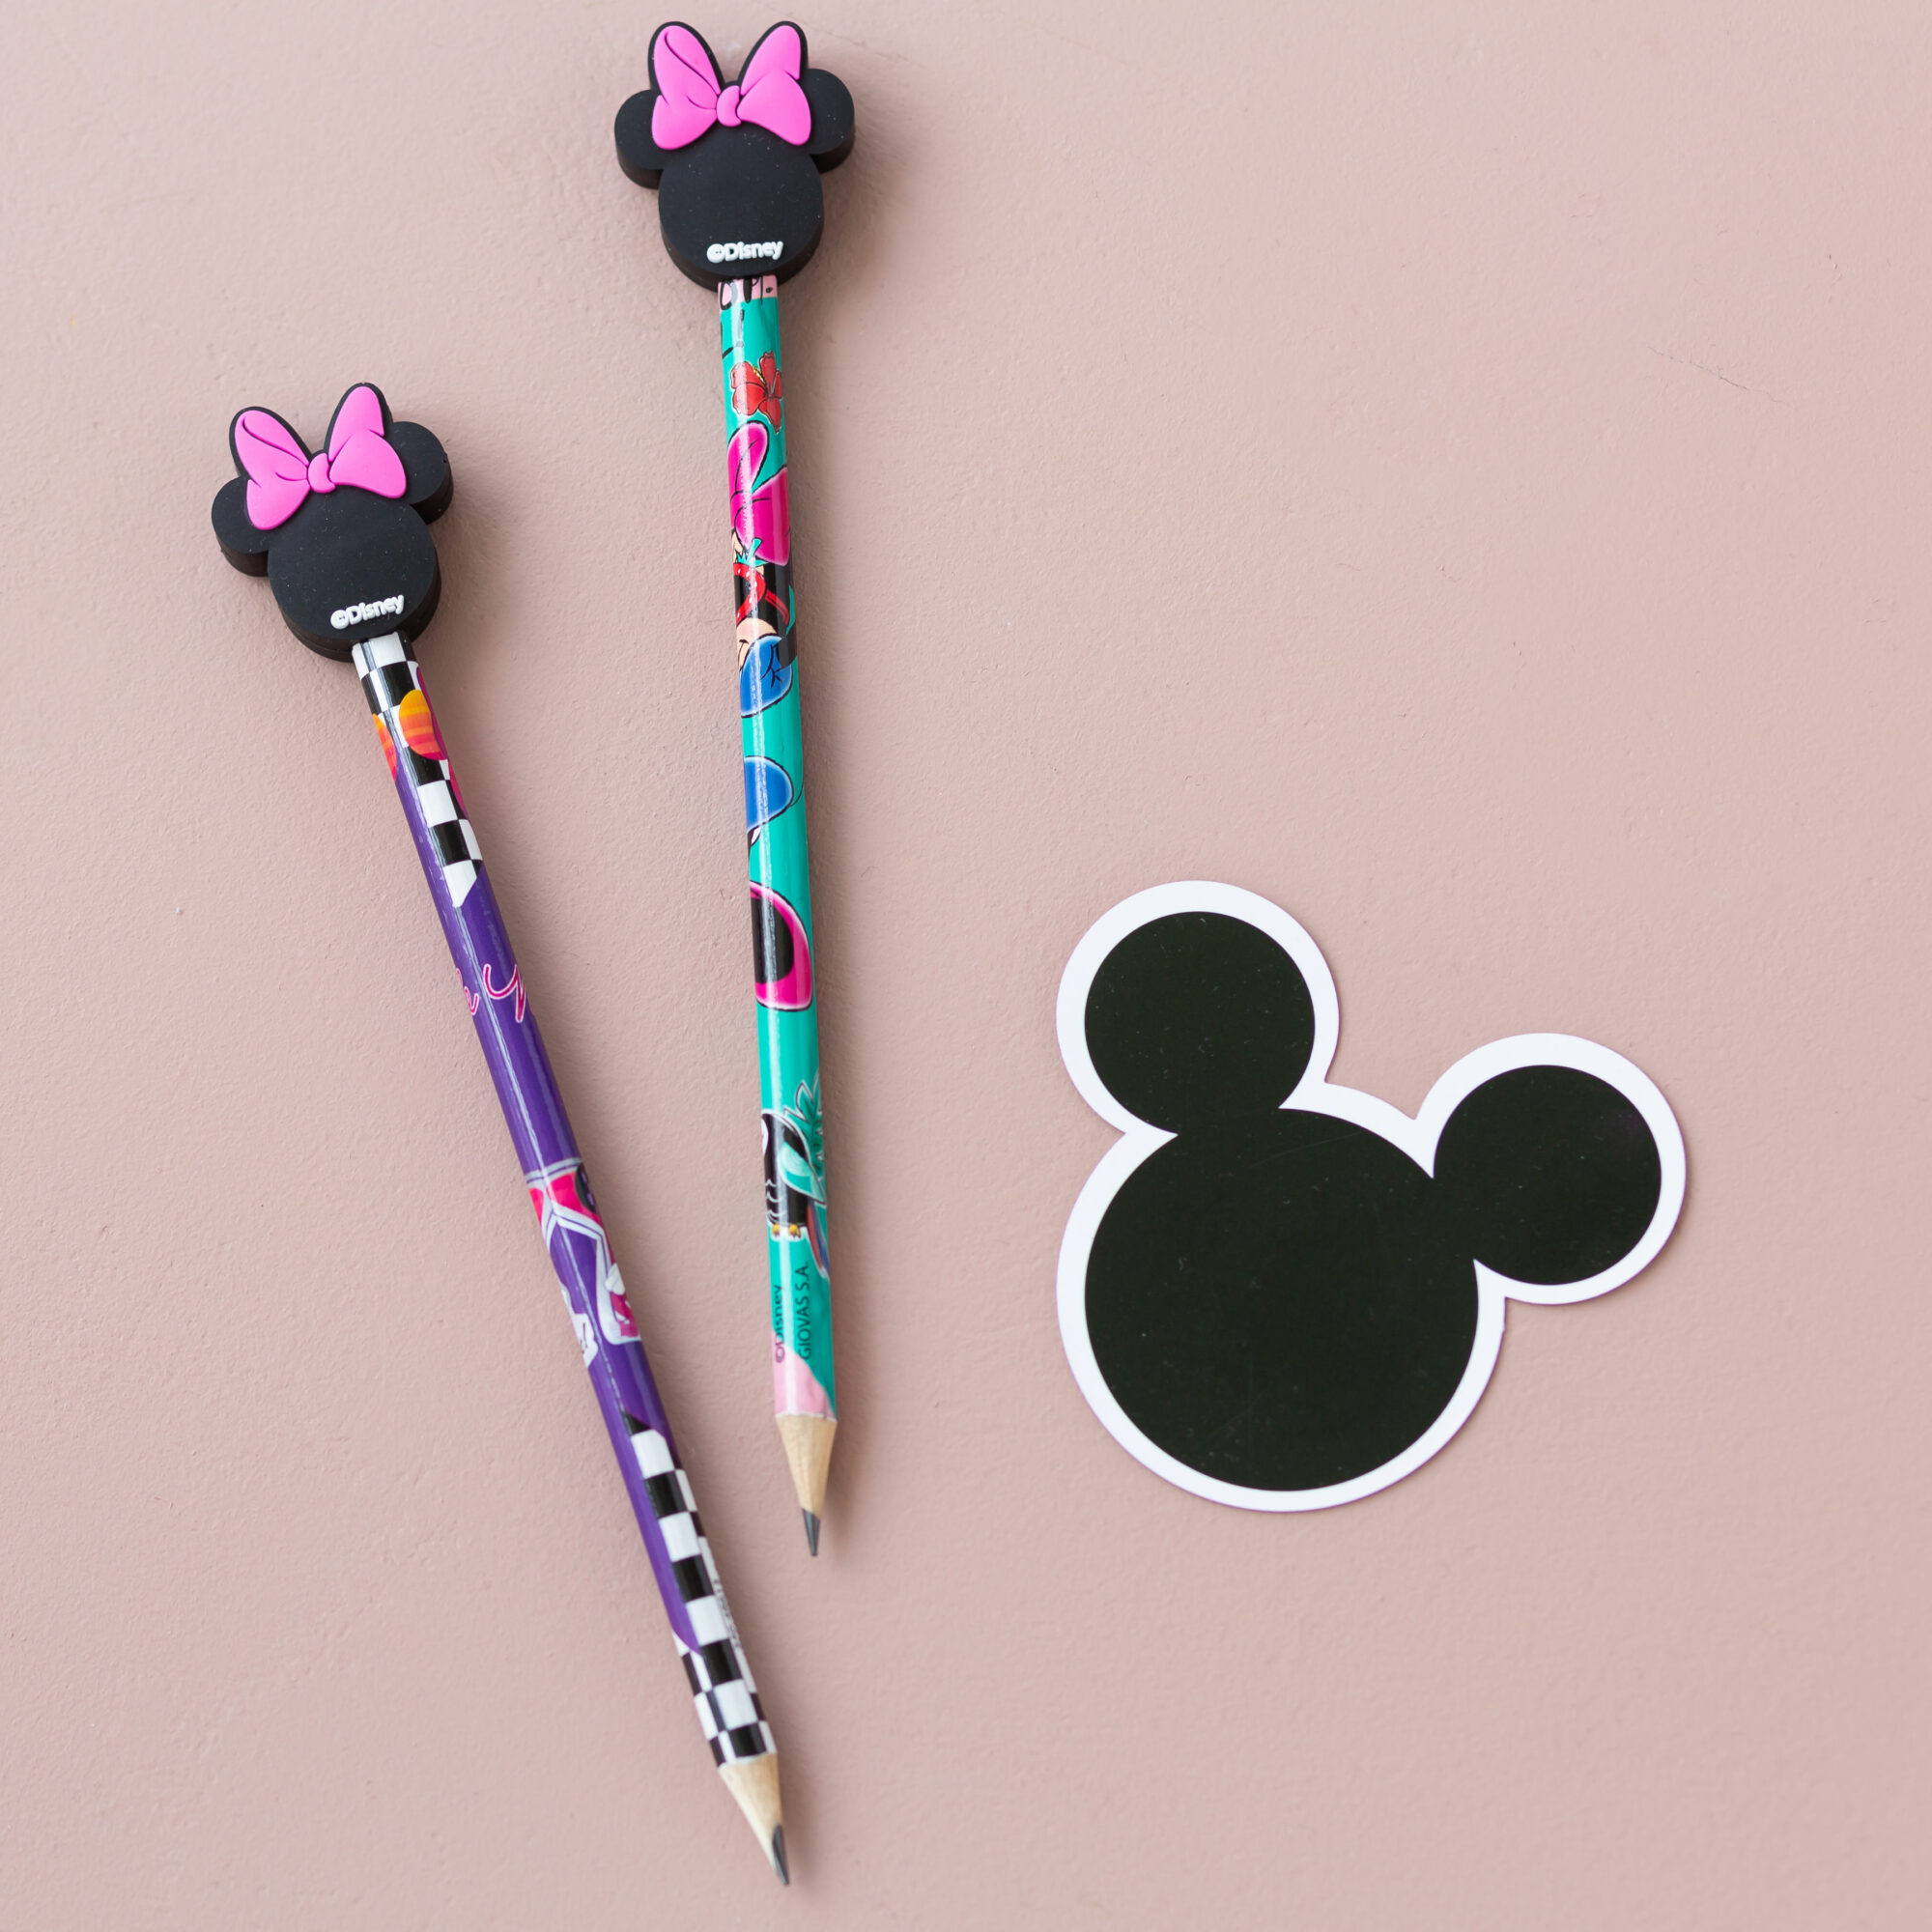 Disney Minnie Mouse Pencil with Rubber